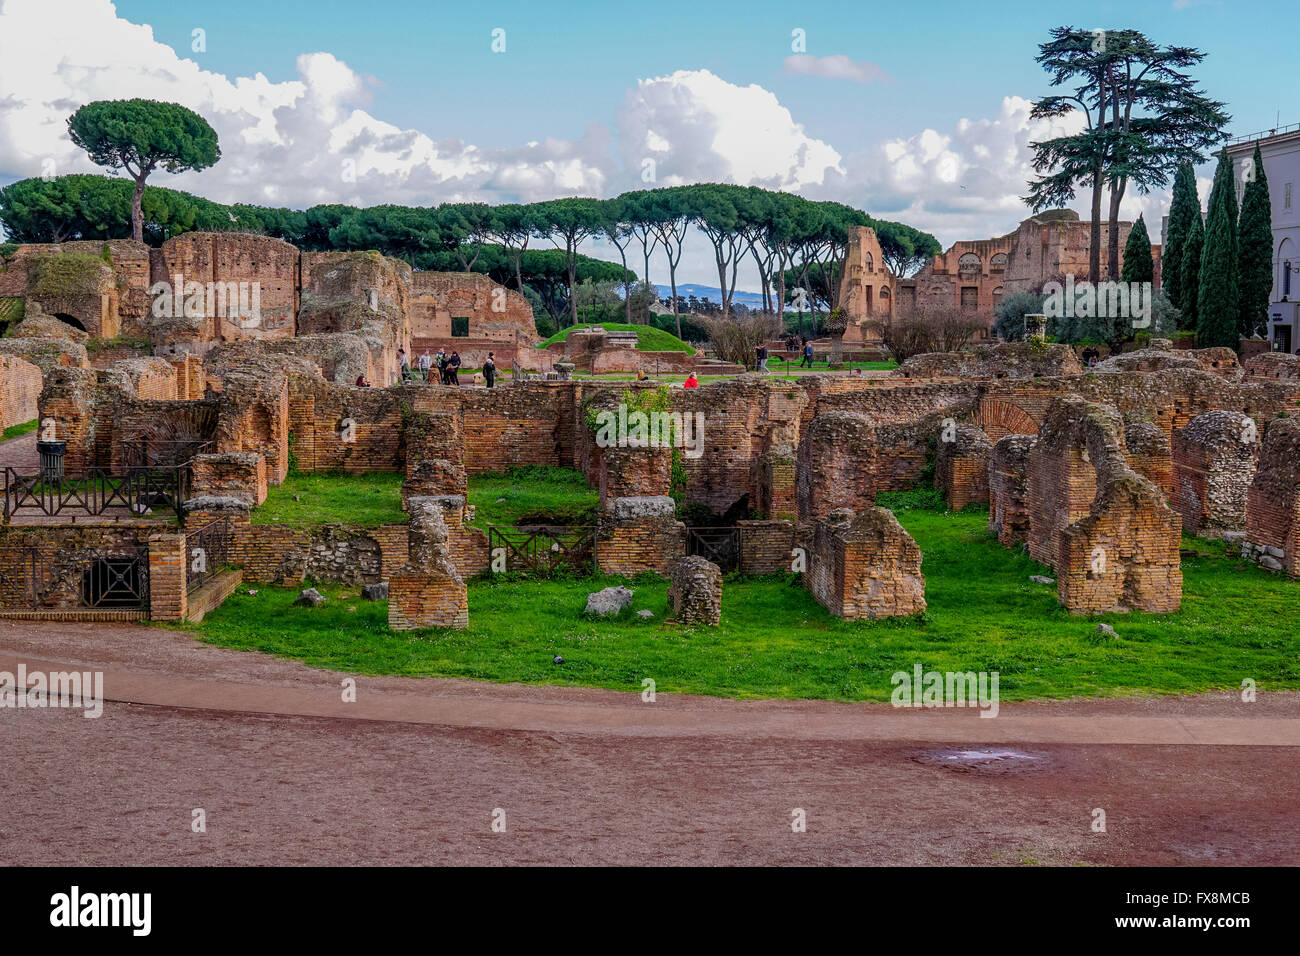 Ruins of the Domus Flavia (Flavian Palace), Palatine Hill, Rome - Stock Image